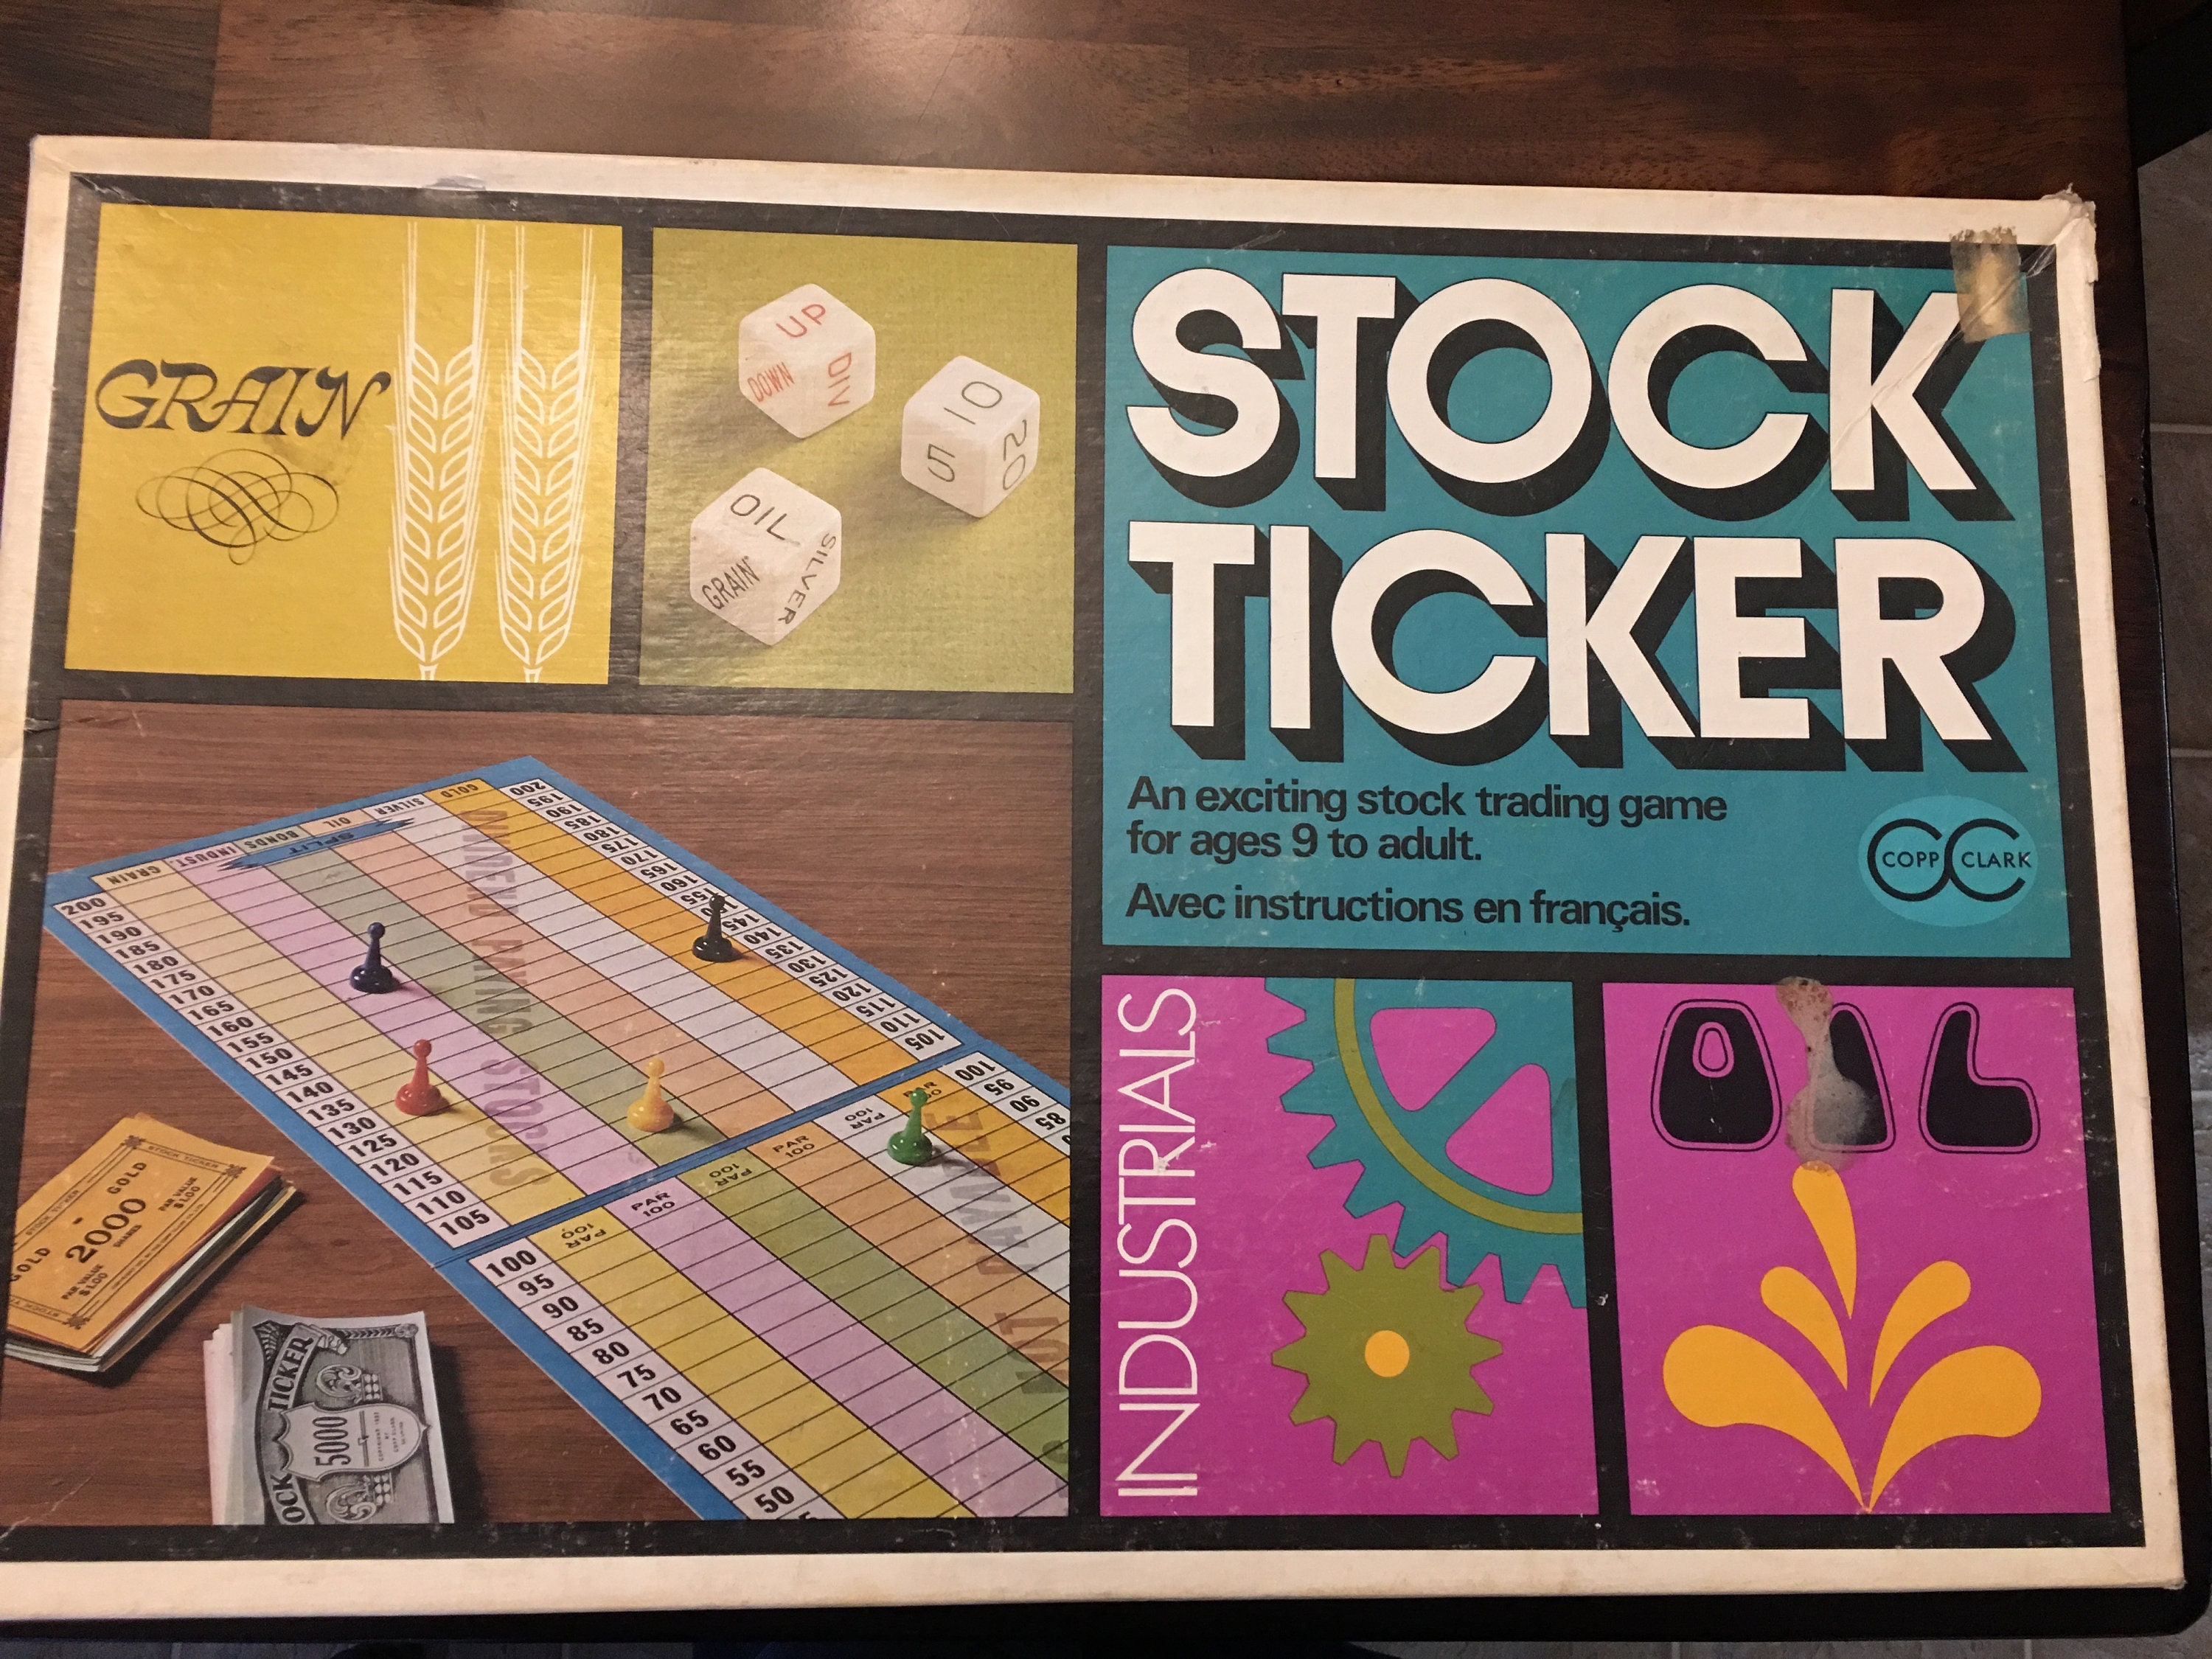 Vintage Stock Ticker Board Game Includes All Accessories